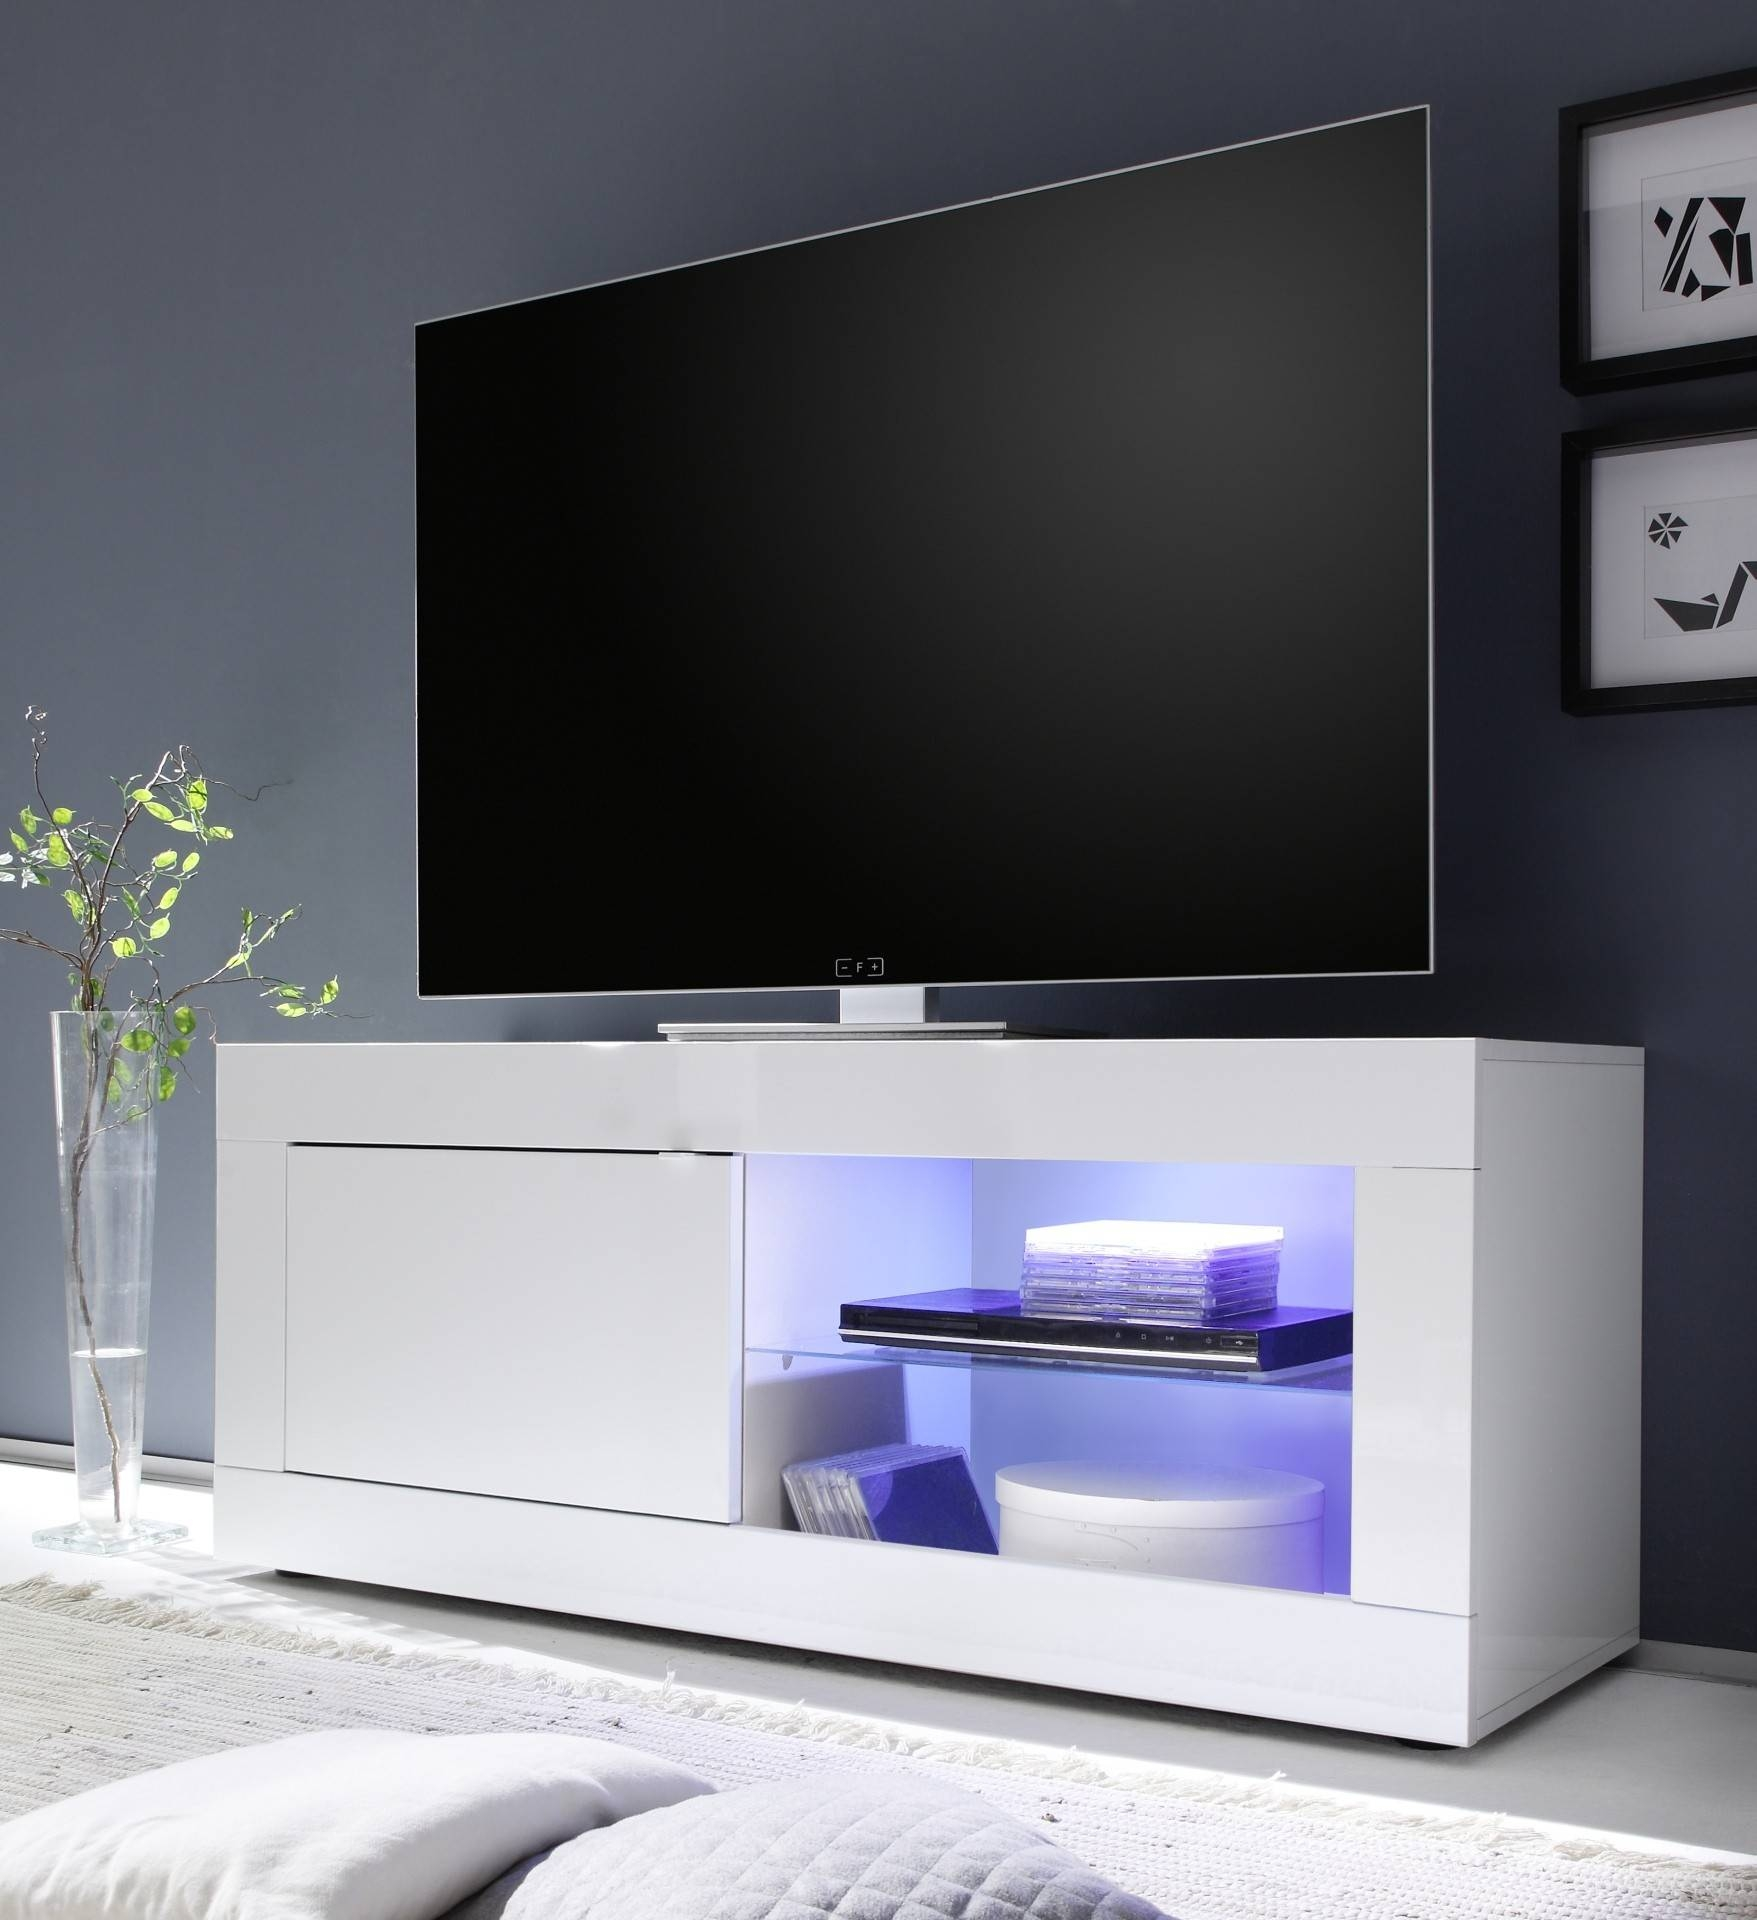 Eos - Large High Gloss Tv Unit - Tv Stands - Sena Home Furniture for White High Gloss Tv Stands (Image 6 of 15)